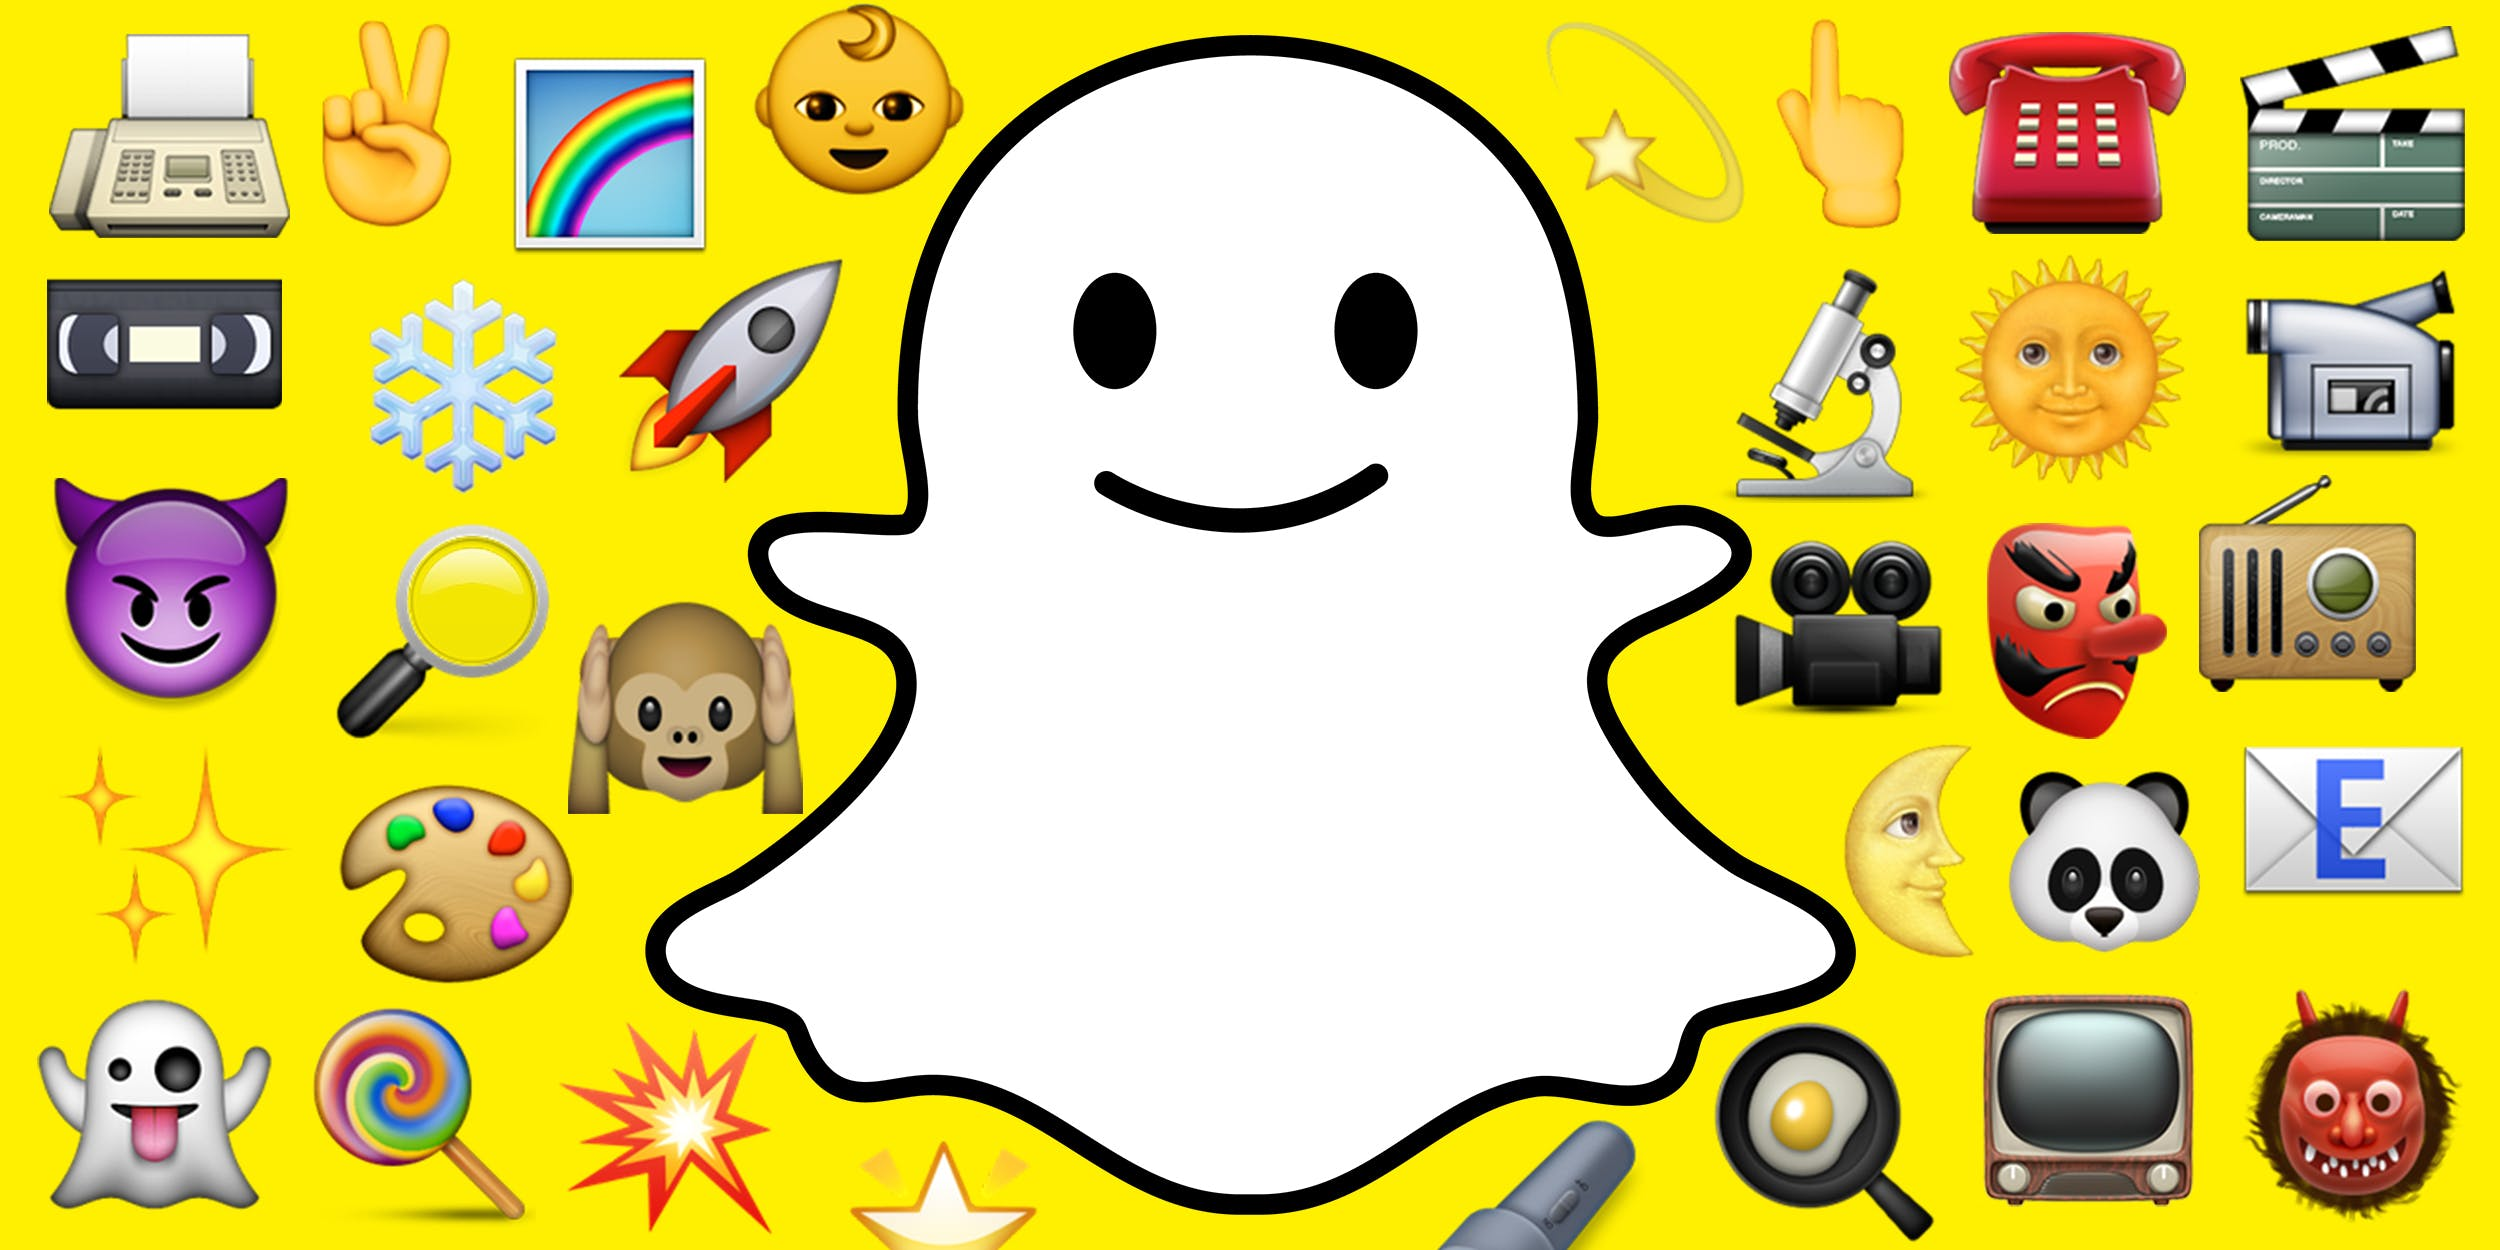 best iphone apps: Snapchat trophies